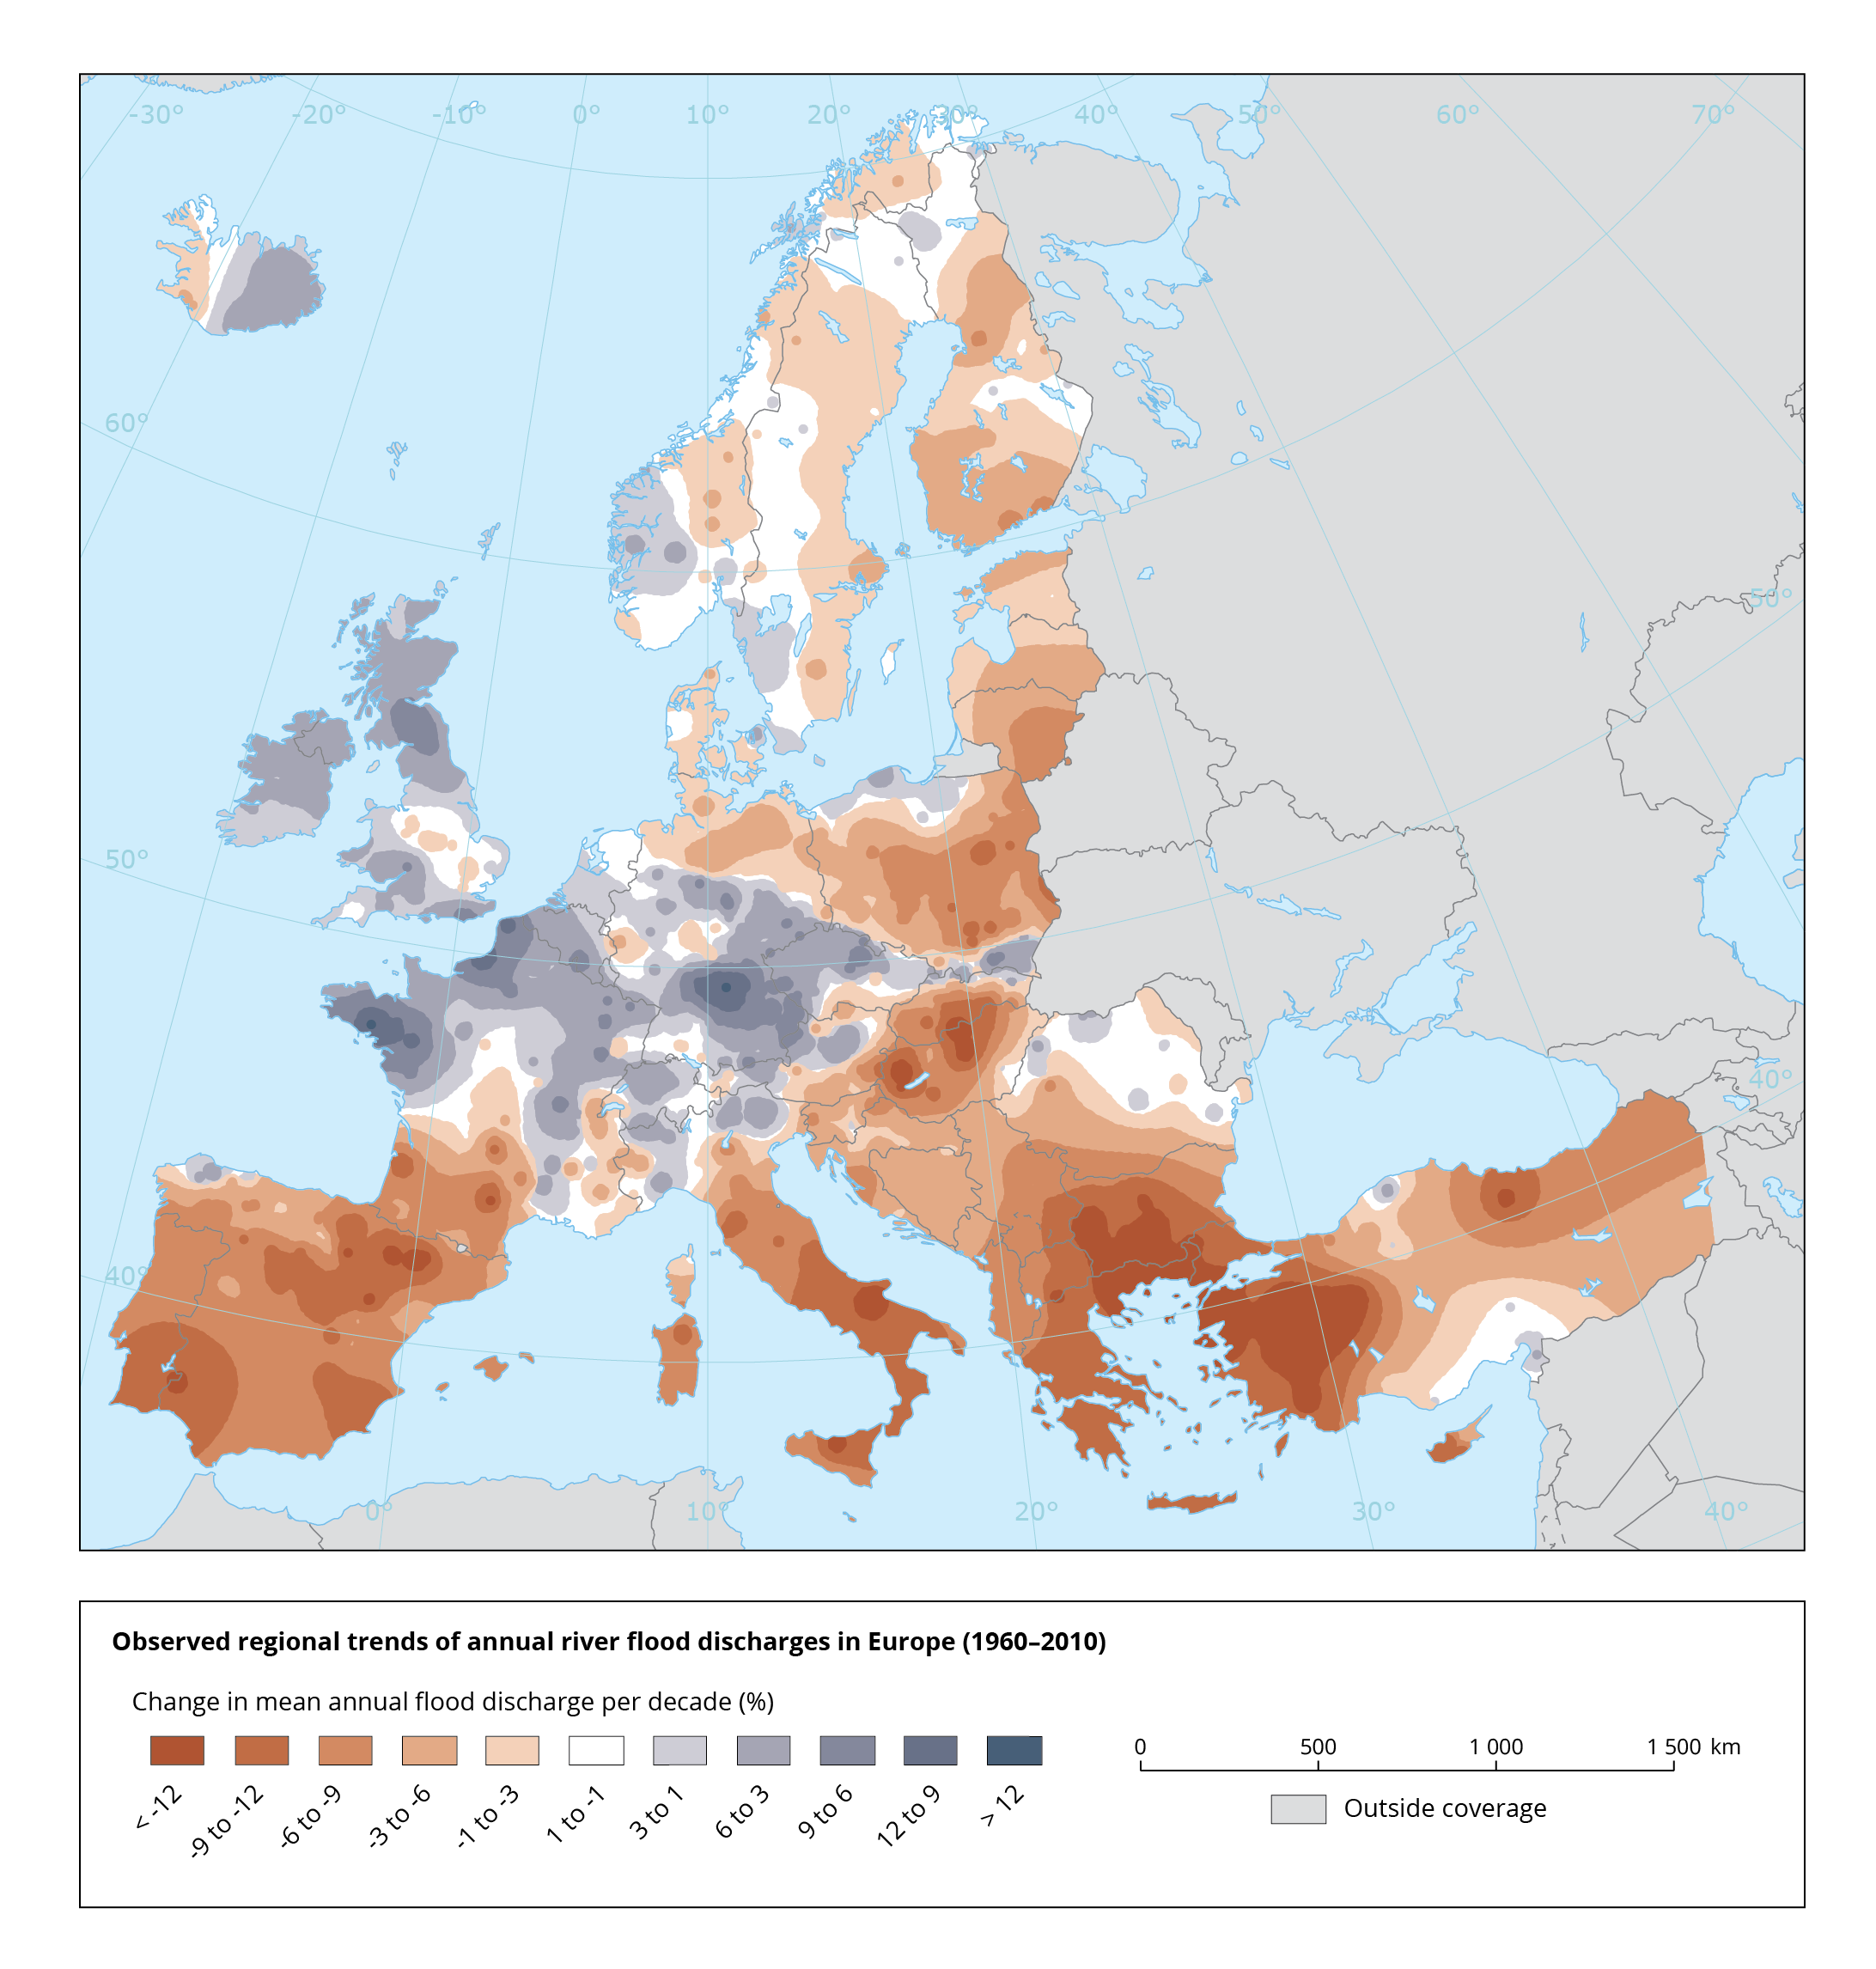 Observed regional trends in annual river flood discharges in Europe (1960–2010)